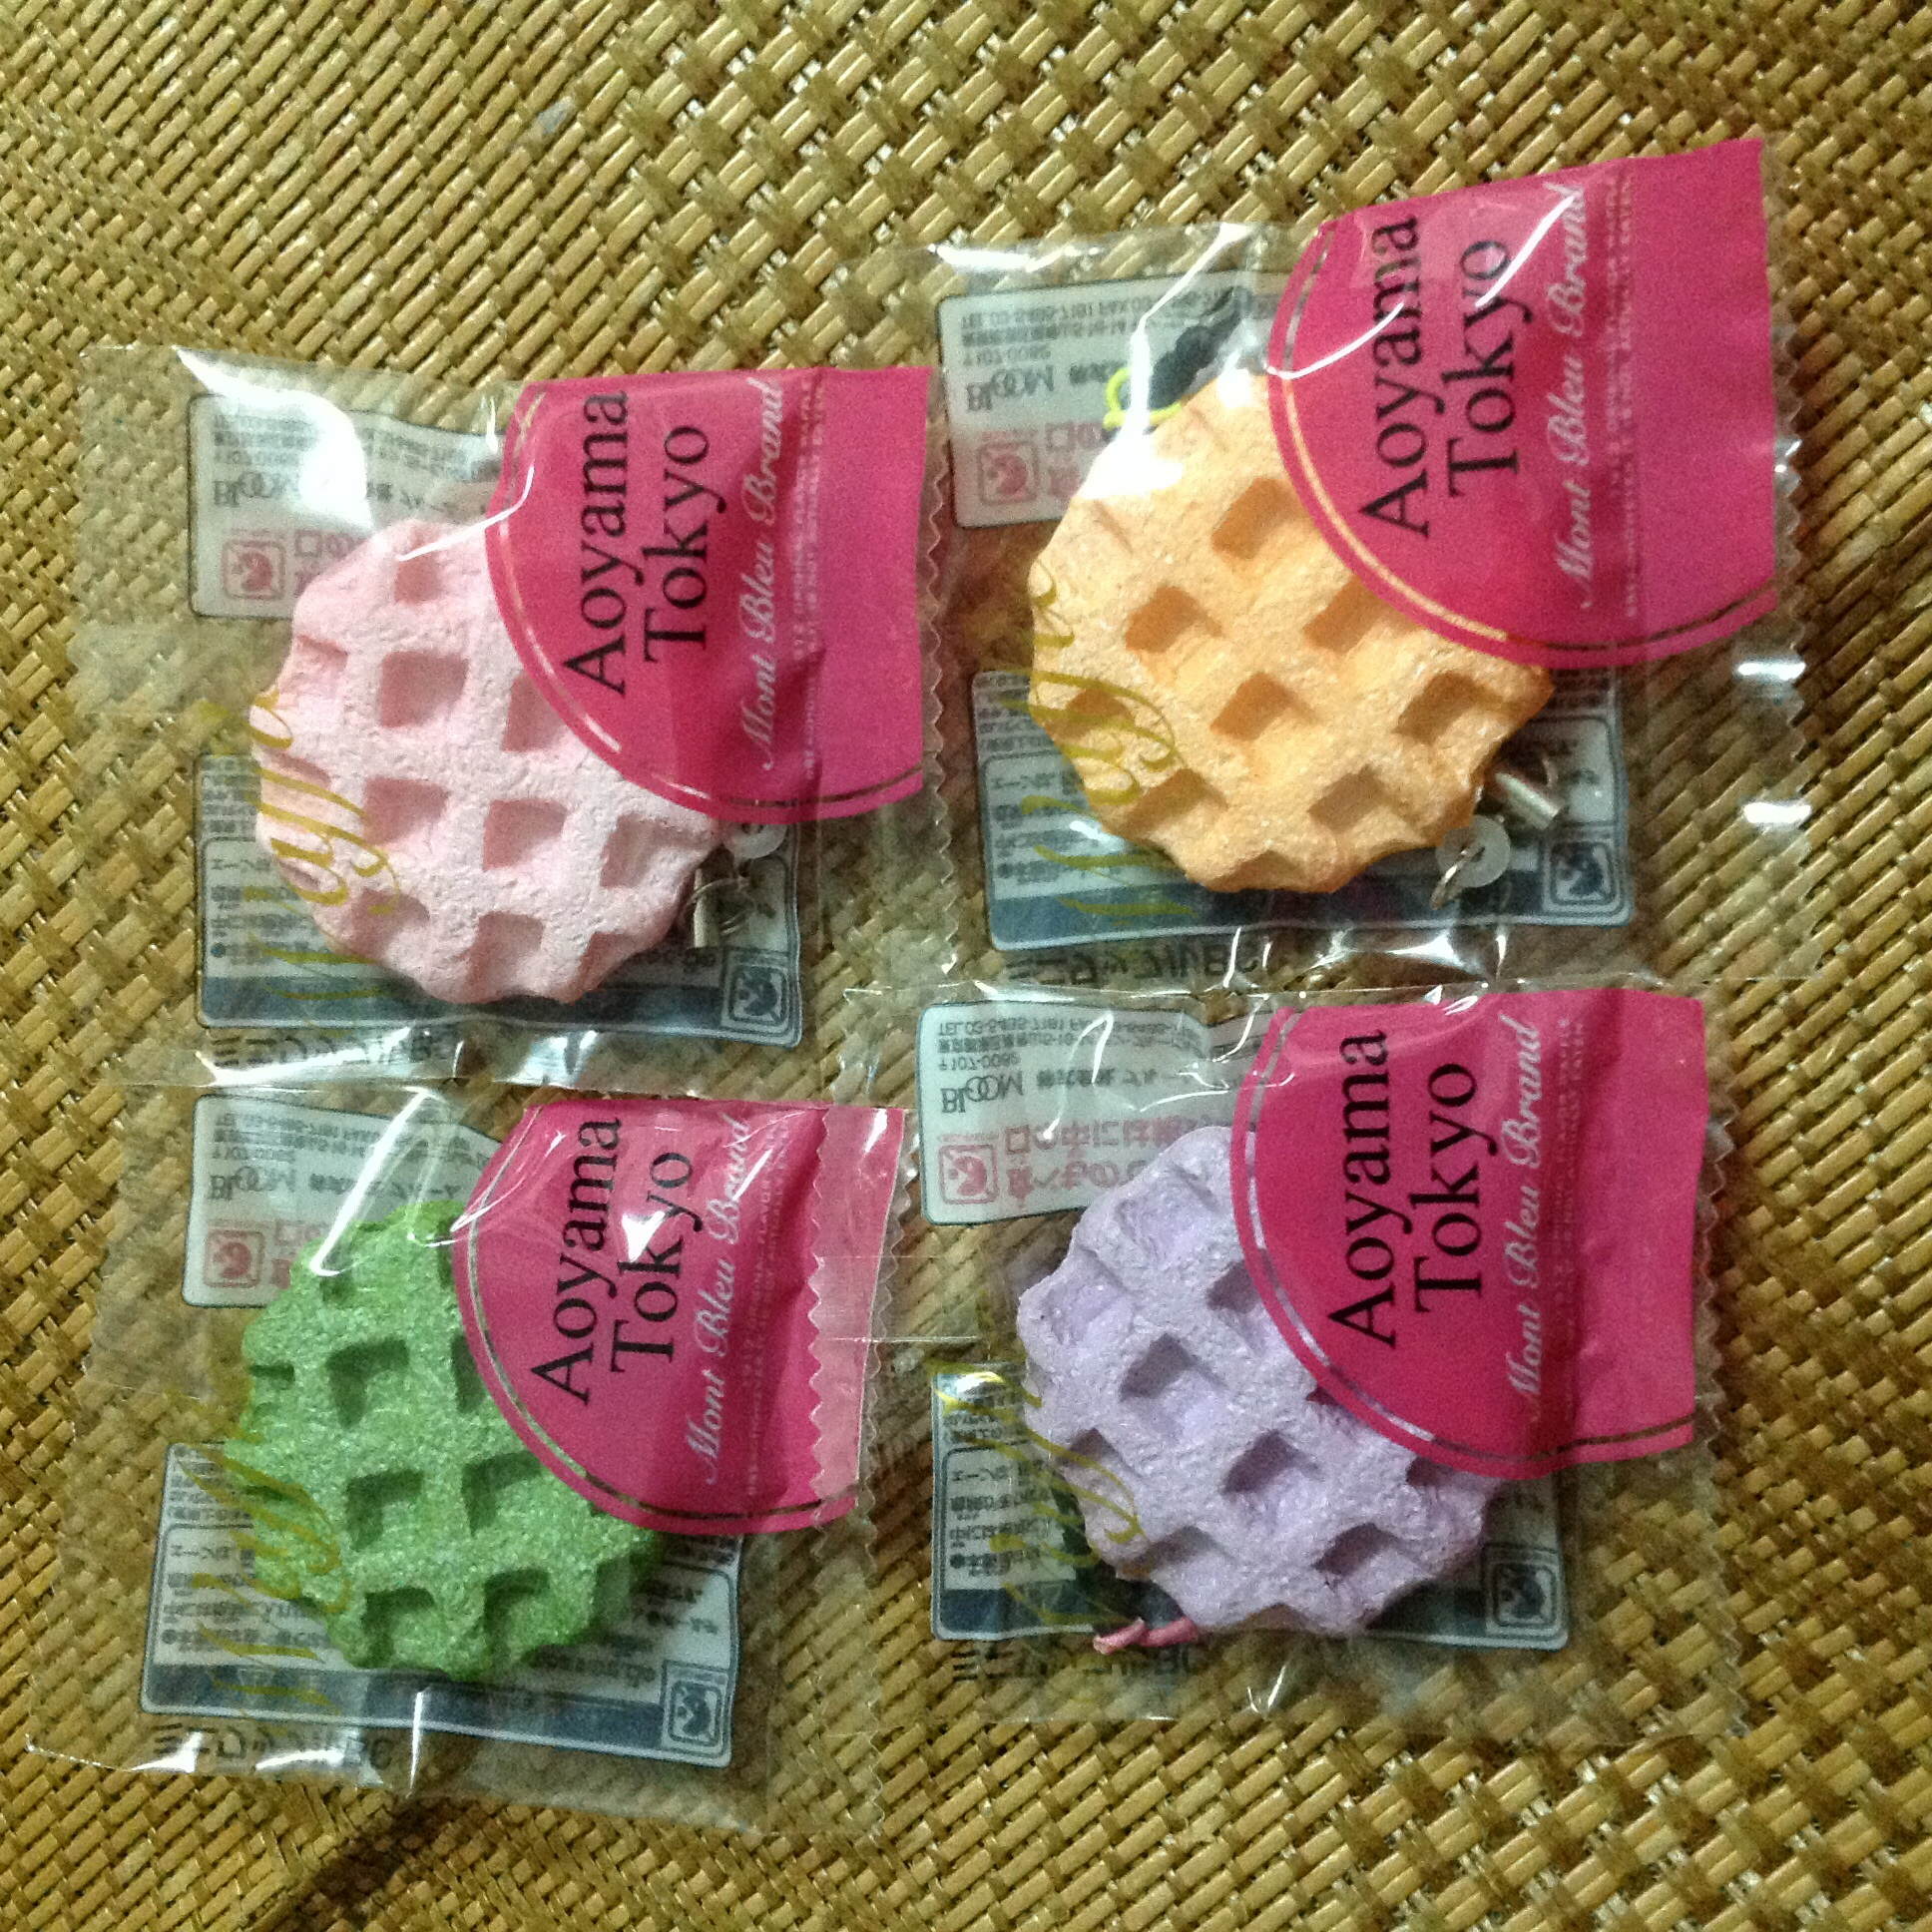 Squishy Collection Bloom : ~SquishyStuff~ I-bloom licensed Aoyama Small Tokyo Squishy Waffle Set Online Store Powered ...